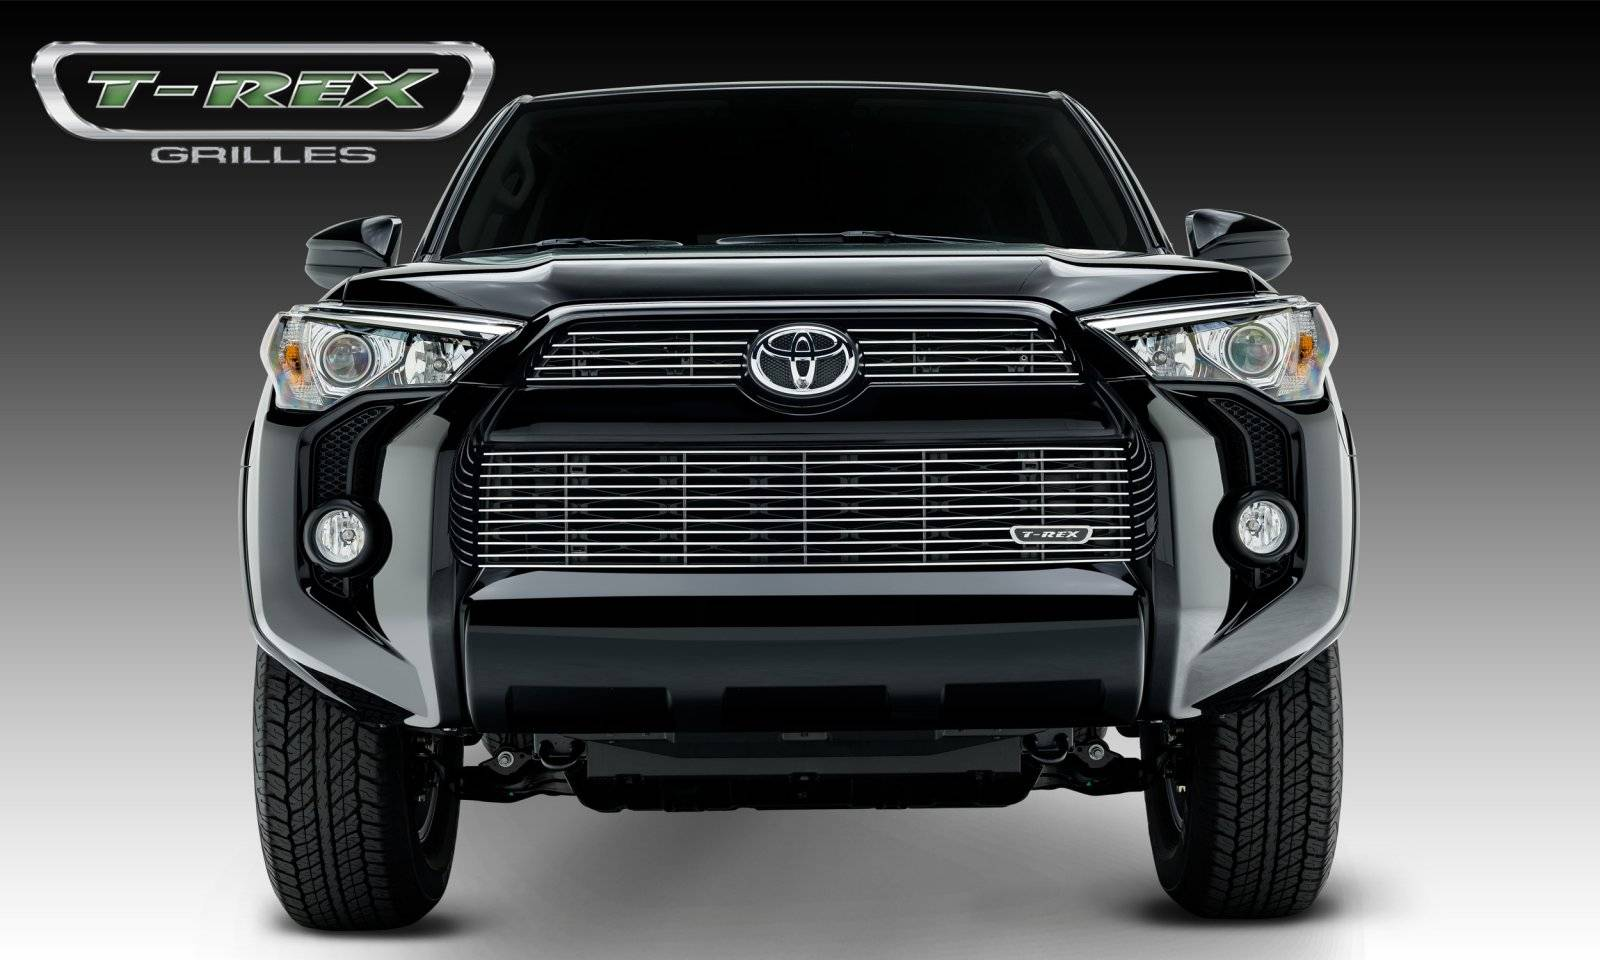 Toyota 4 Runner Billet Grille, Main & Bumper, Overlay, 3 Pc's, Polished Powdercoated Aluminum Bars, Fits Trail & SR5 but not Limited - Pt # 21949